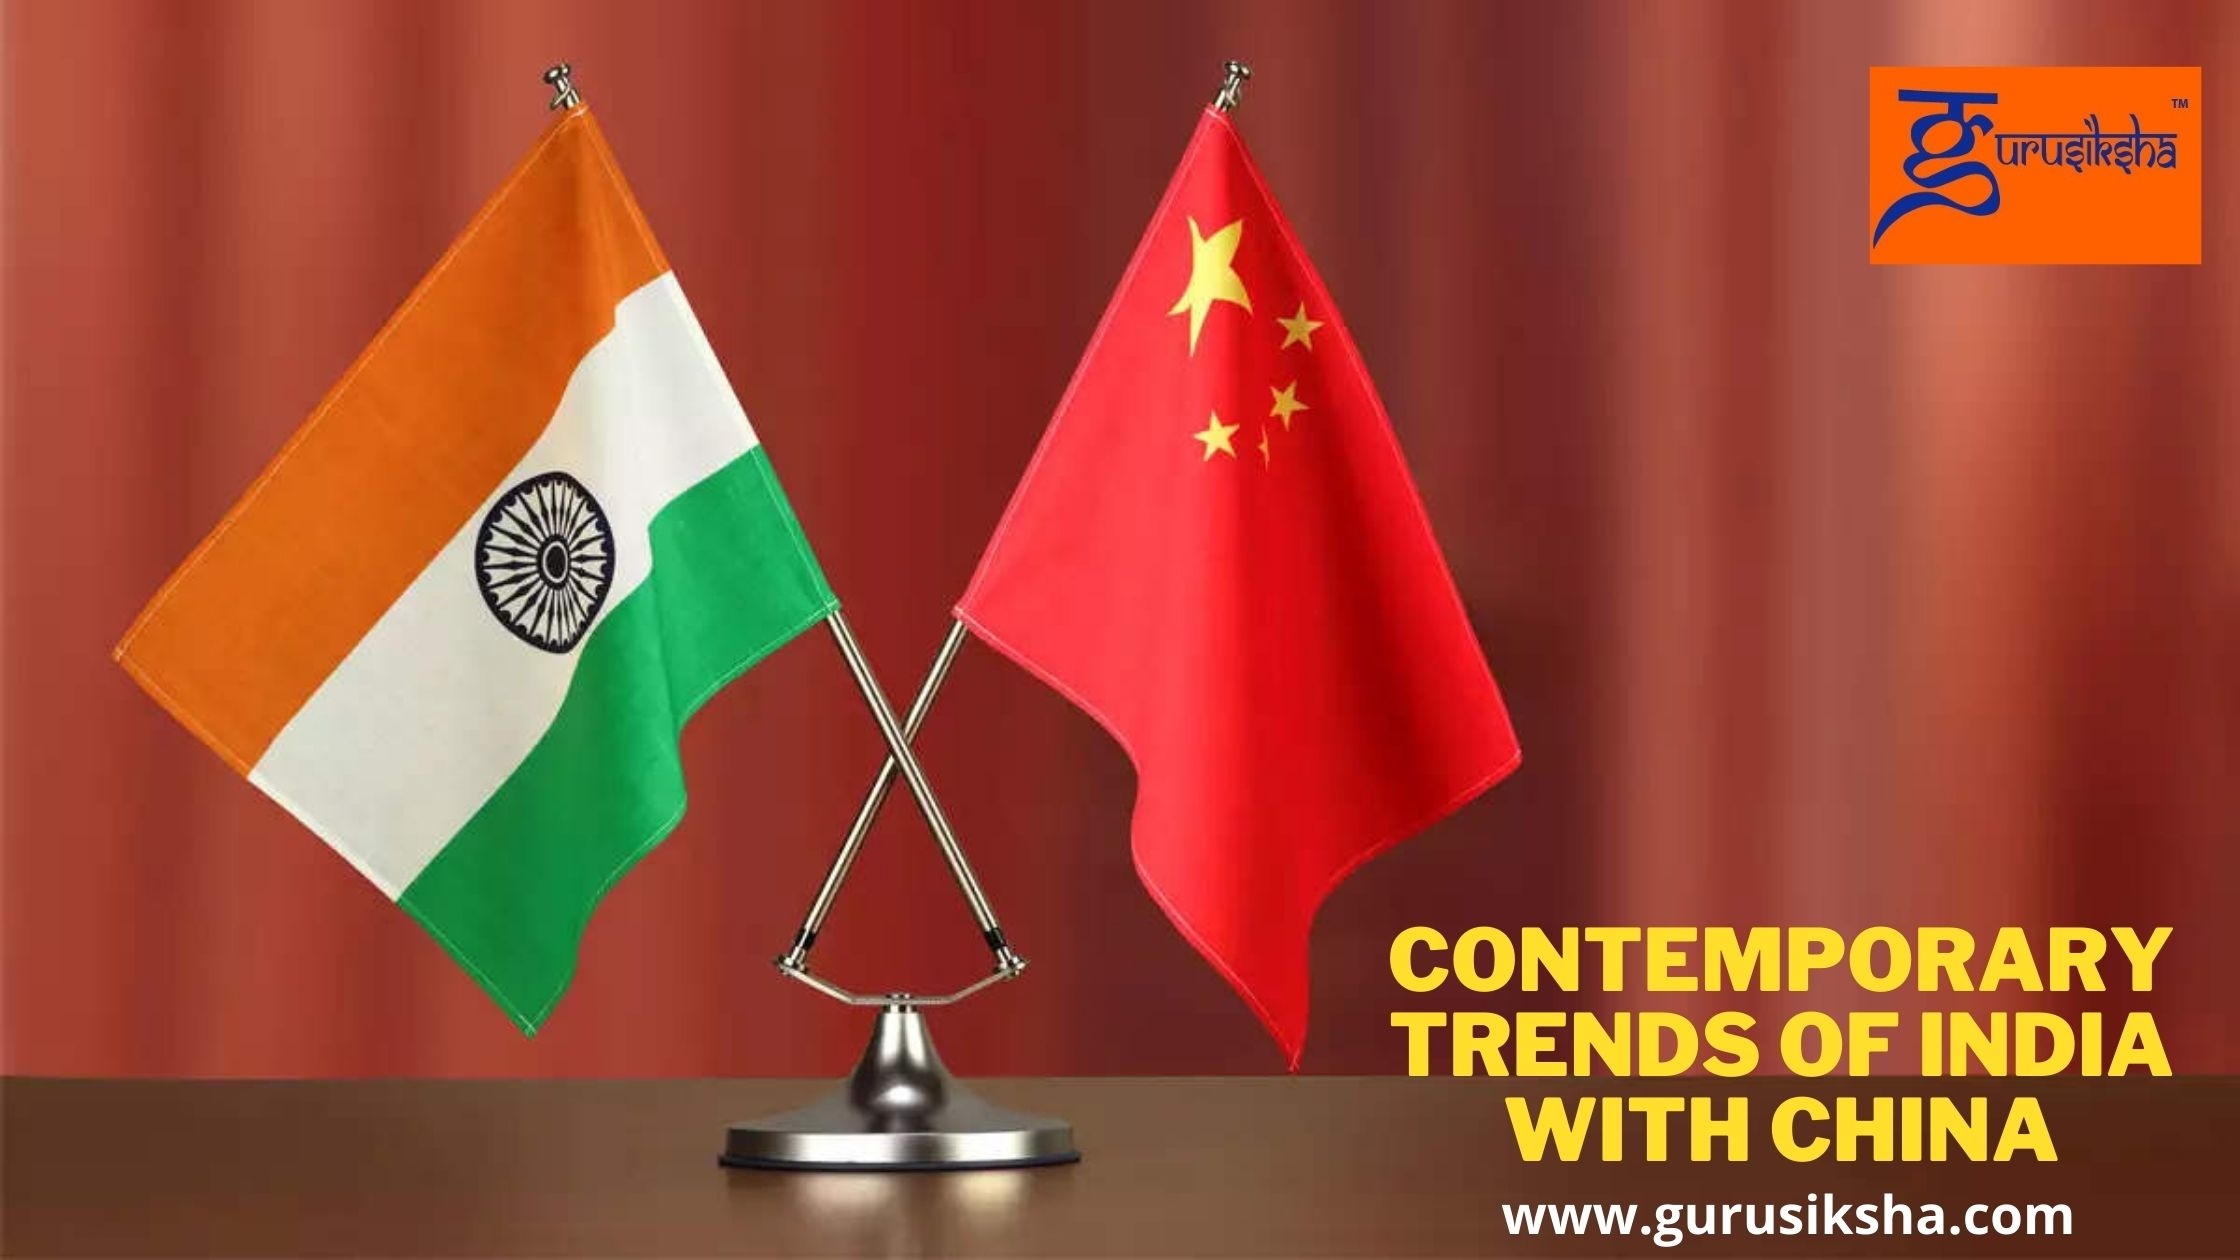 Contemporary Trends Of India With China